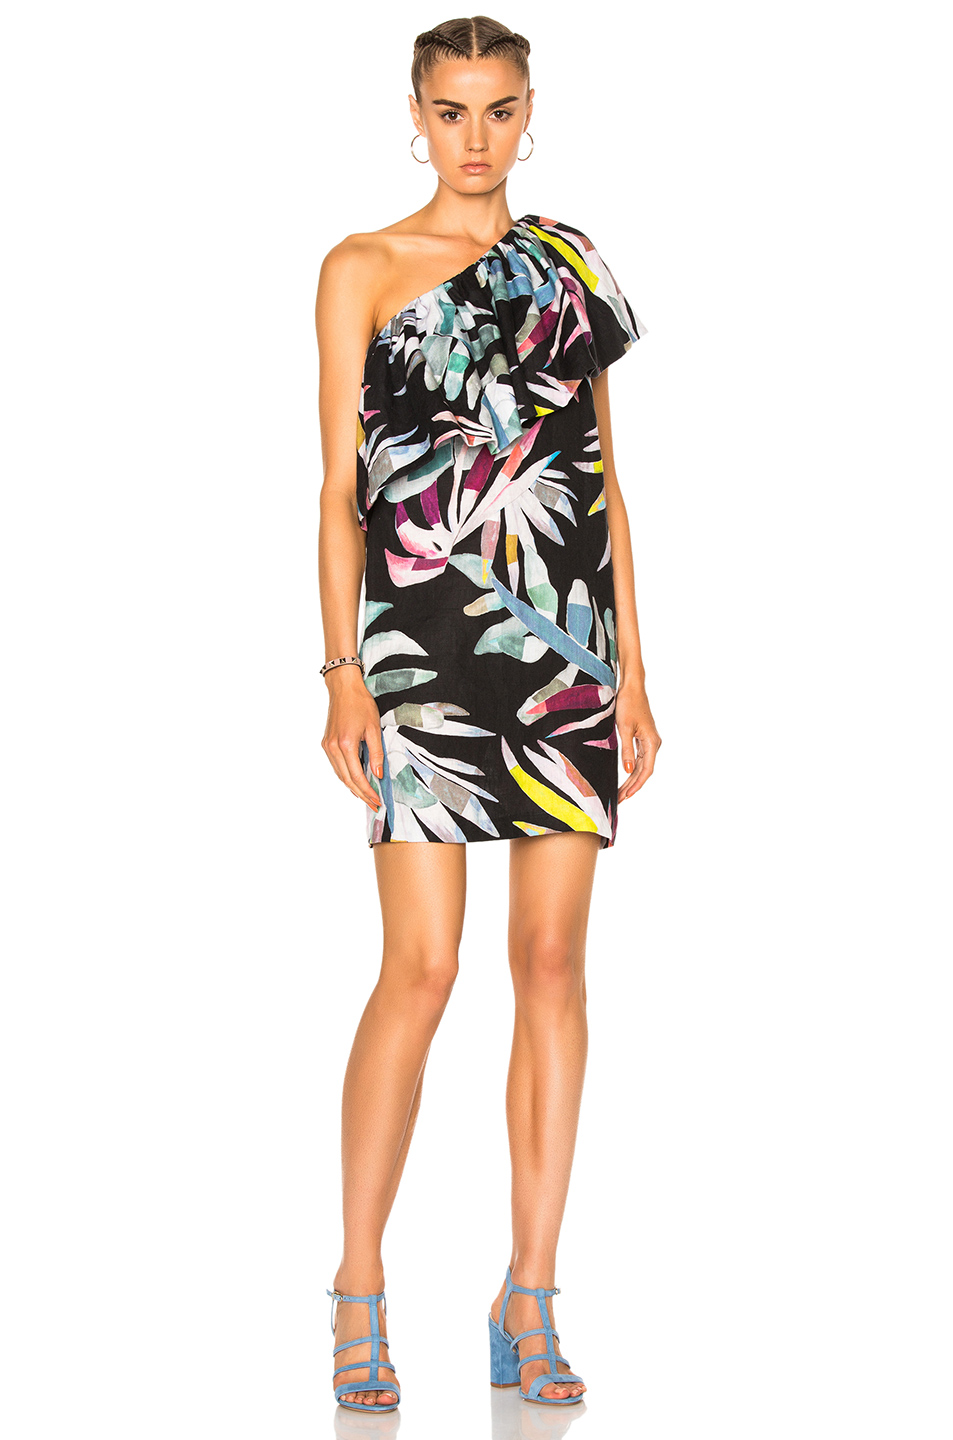 Mara Hoffman One Shoulder Mini Dress in Abstract,Floral